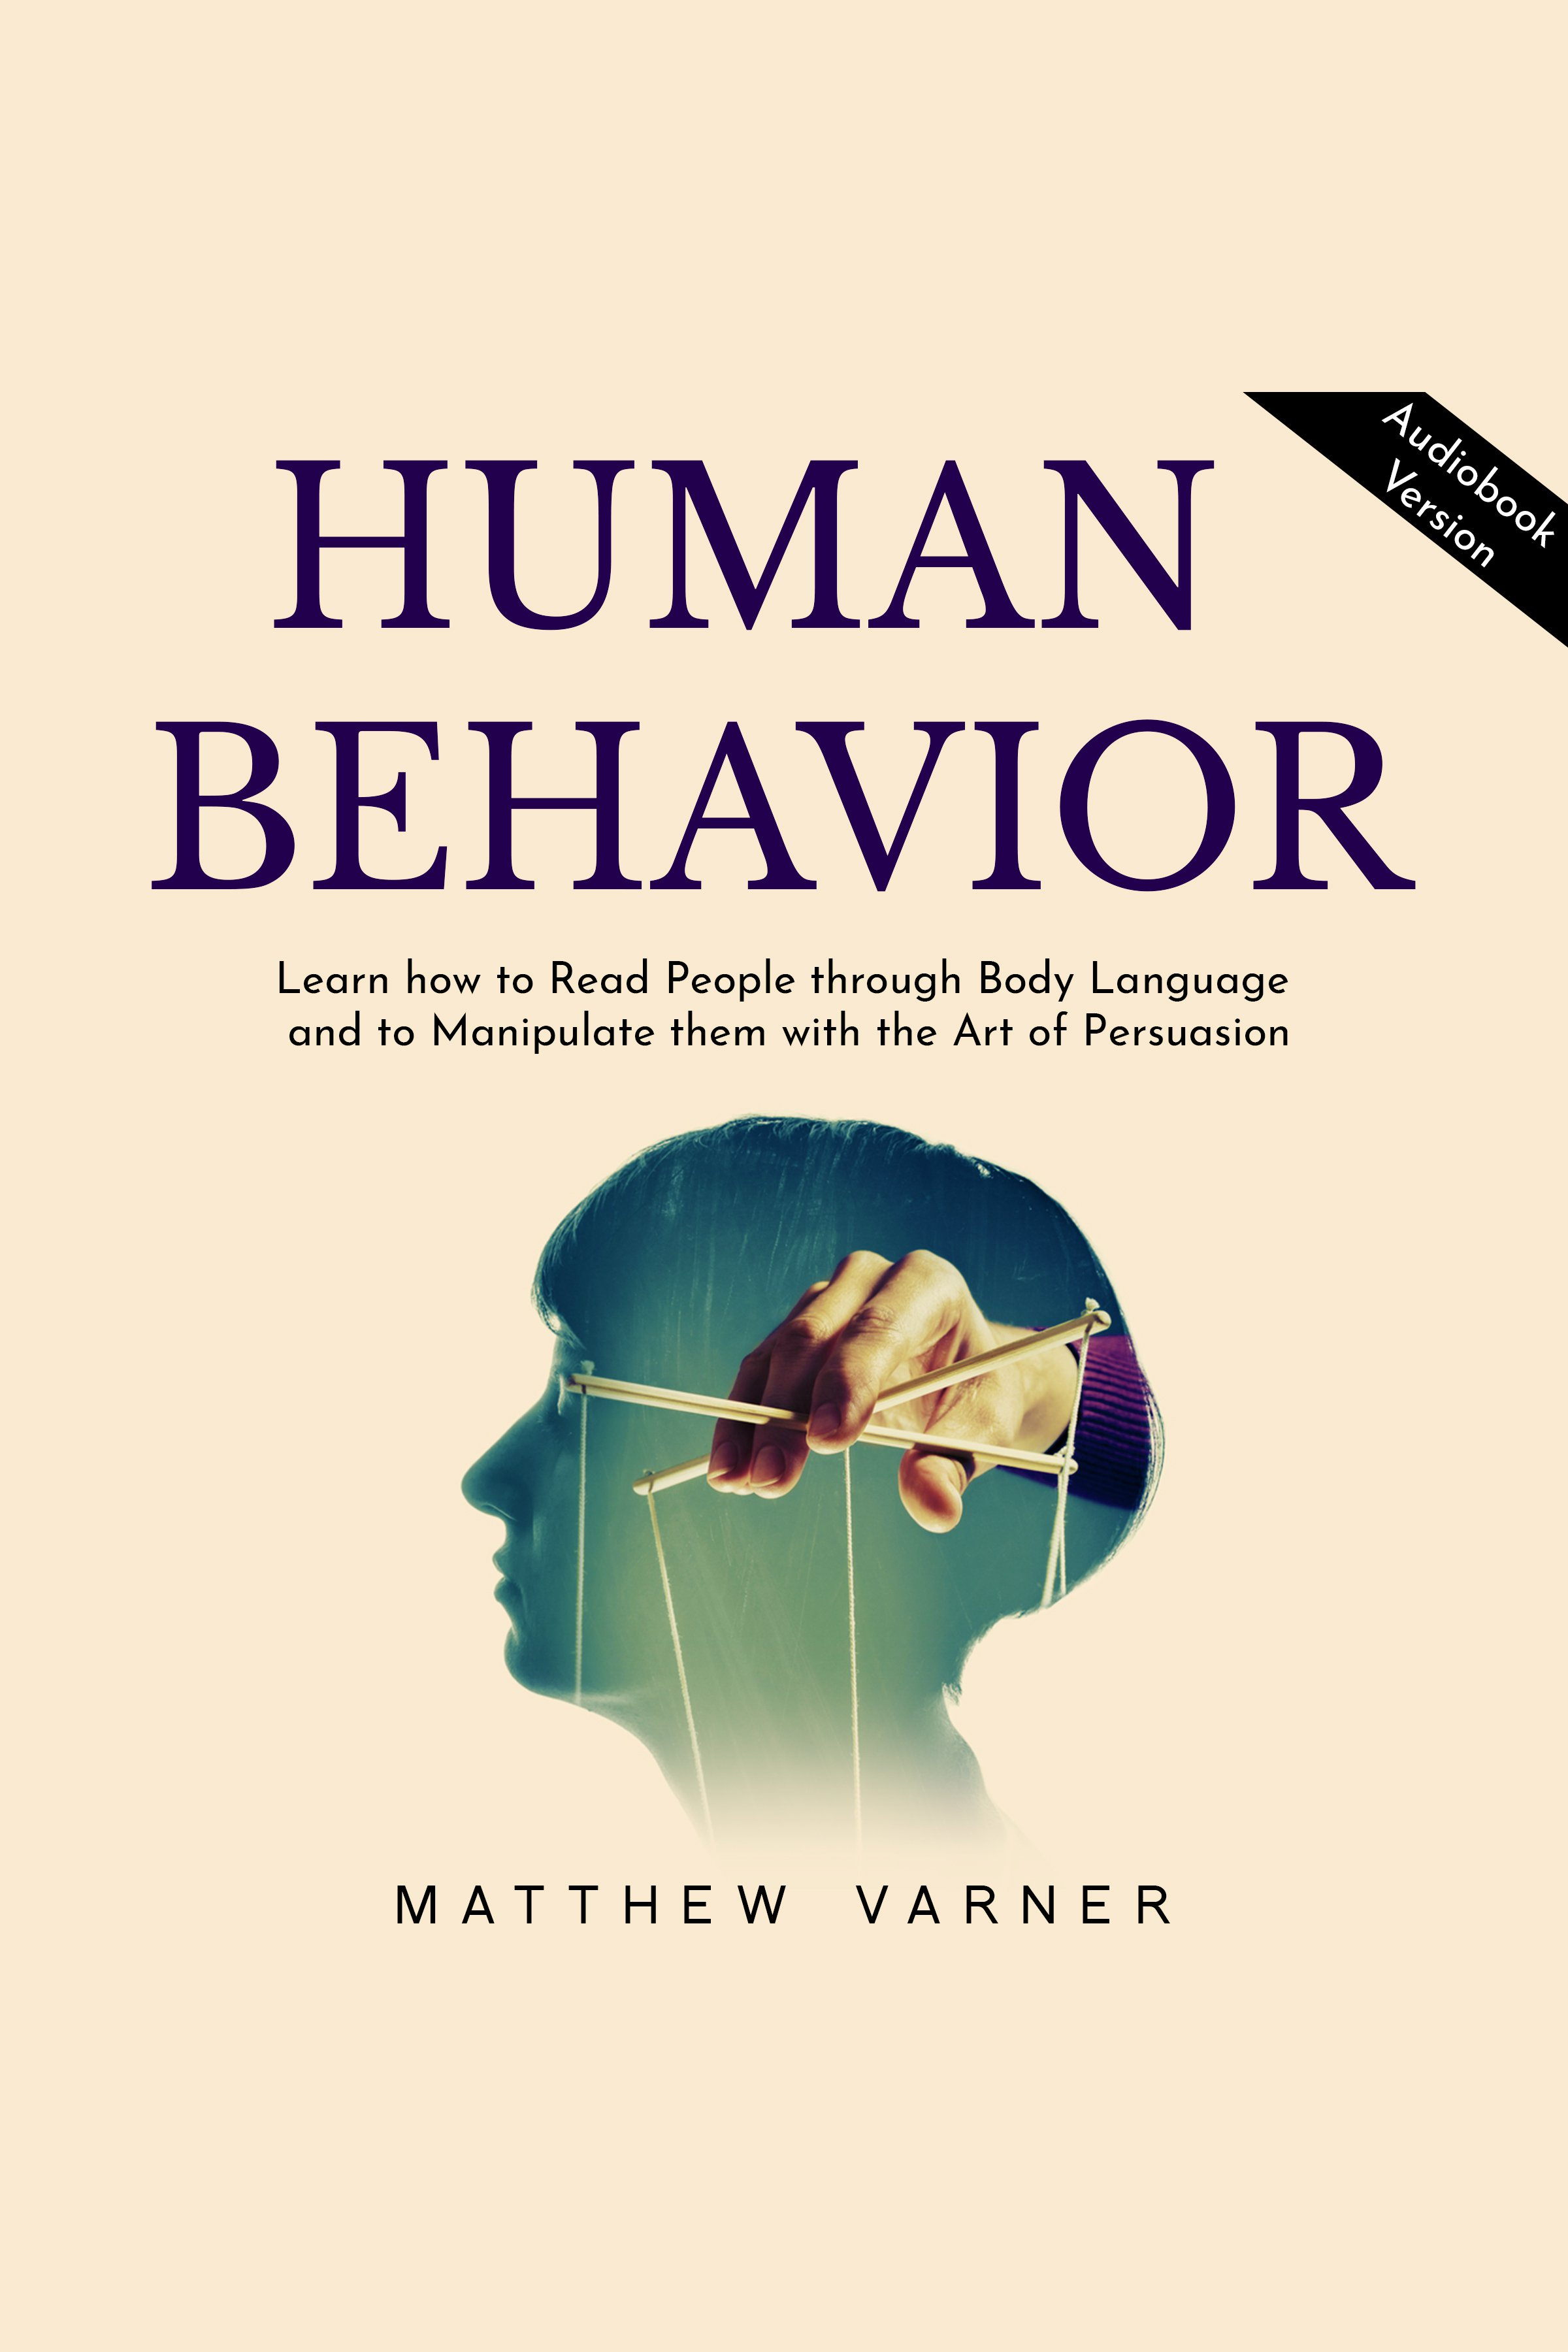 Esta es la portada del audiolibro HUMAN BEHAVIOR: Learn how to Read People through Body Language and to Manipulate them with the Art of Persuasion